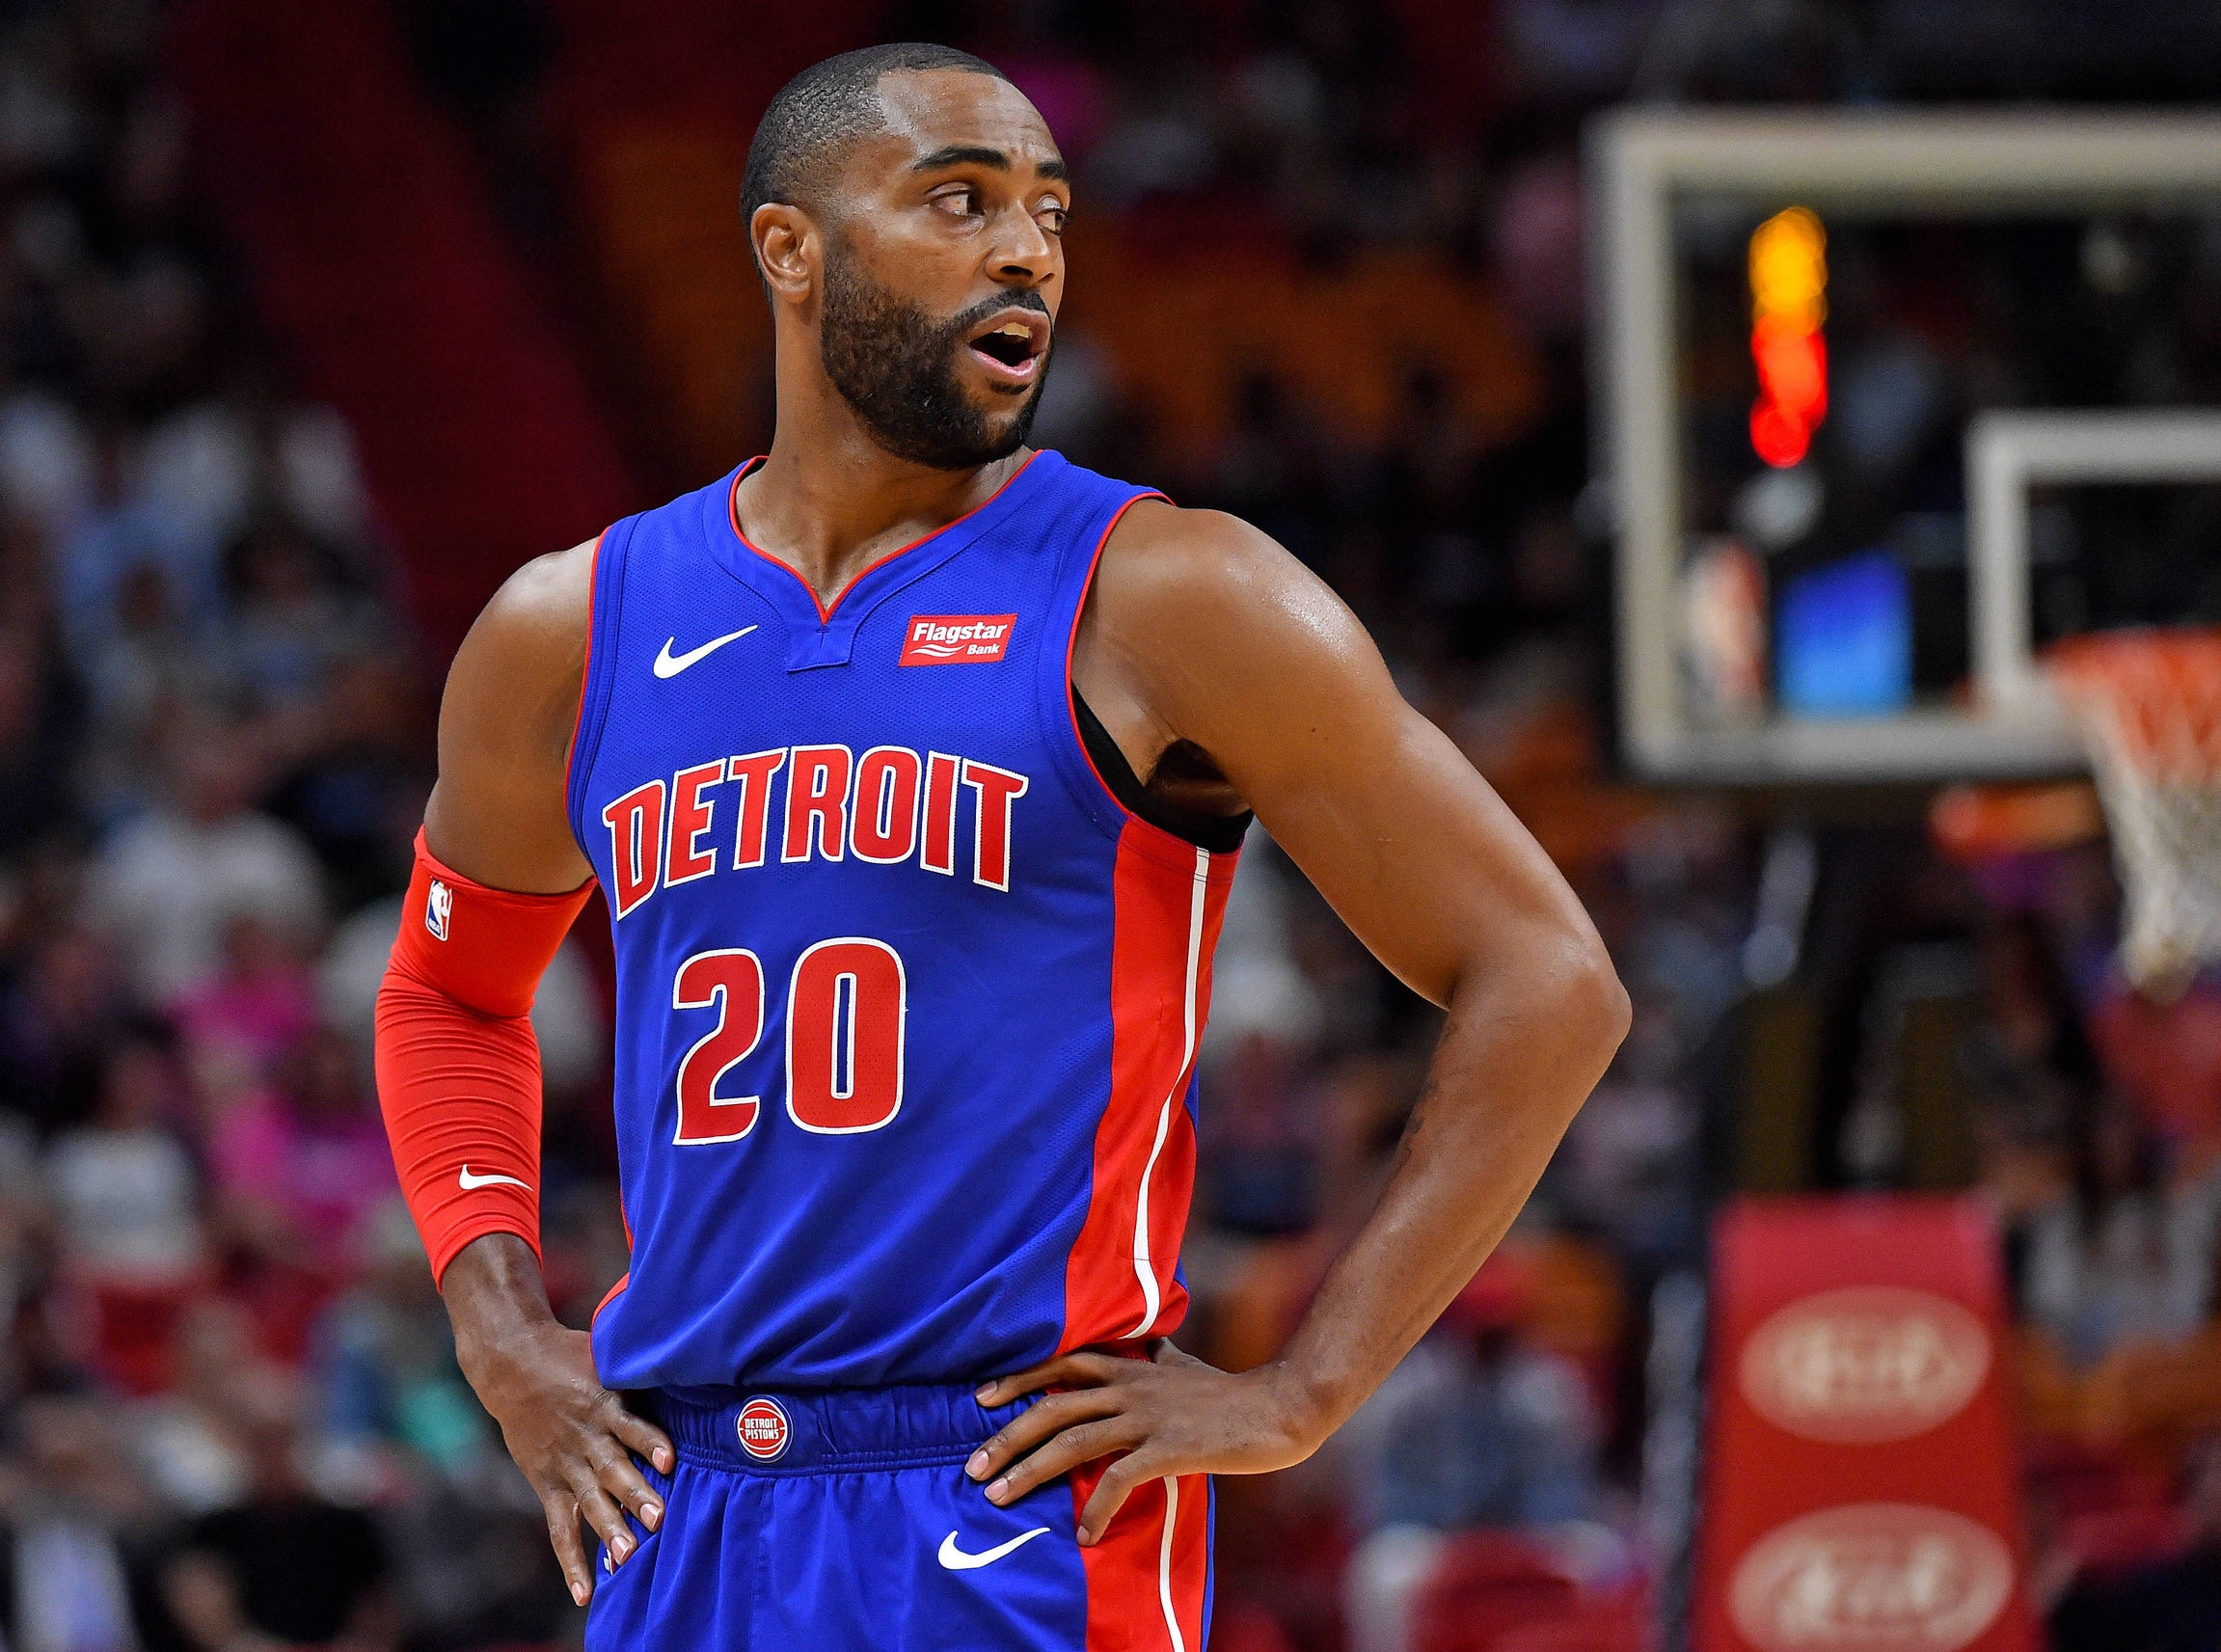 Detroit Pistons guard Wayne Ellington (20) looks on from the court during the first half against the Miami Heat at American Airlines Arena on March 13, 2019.